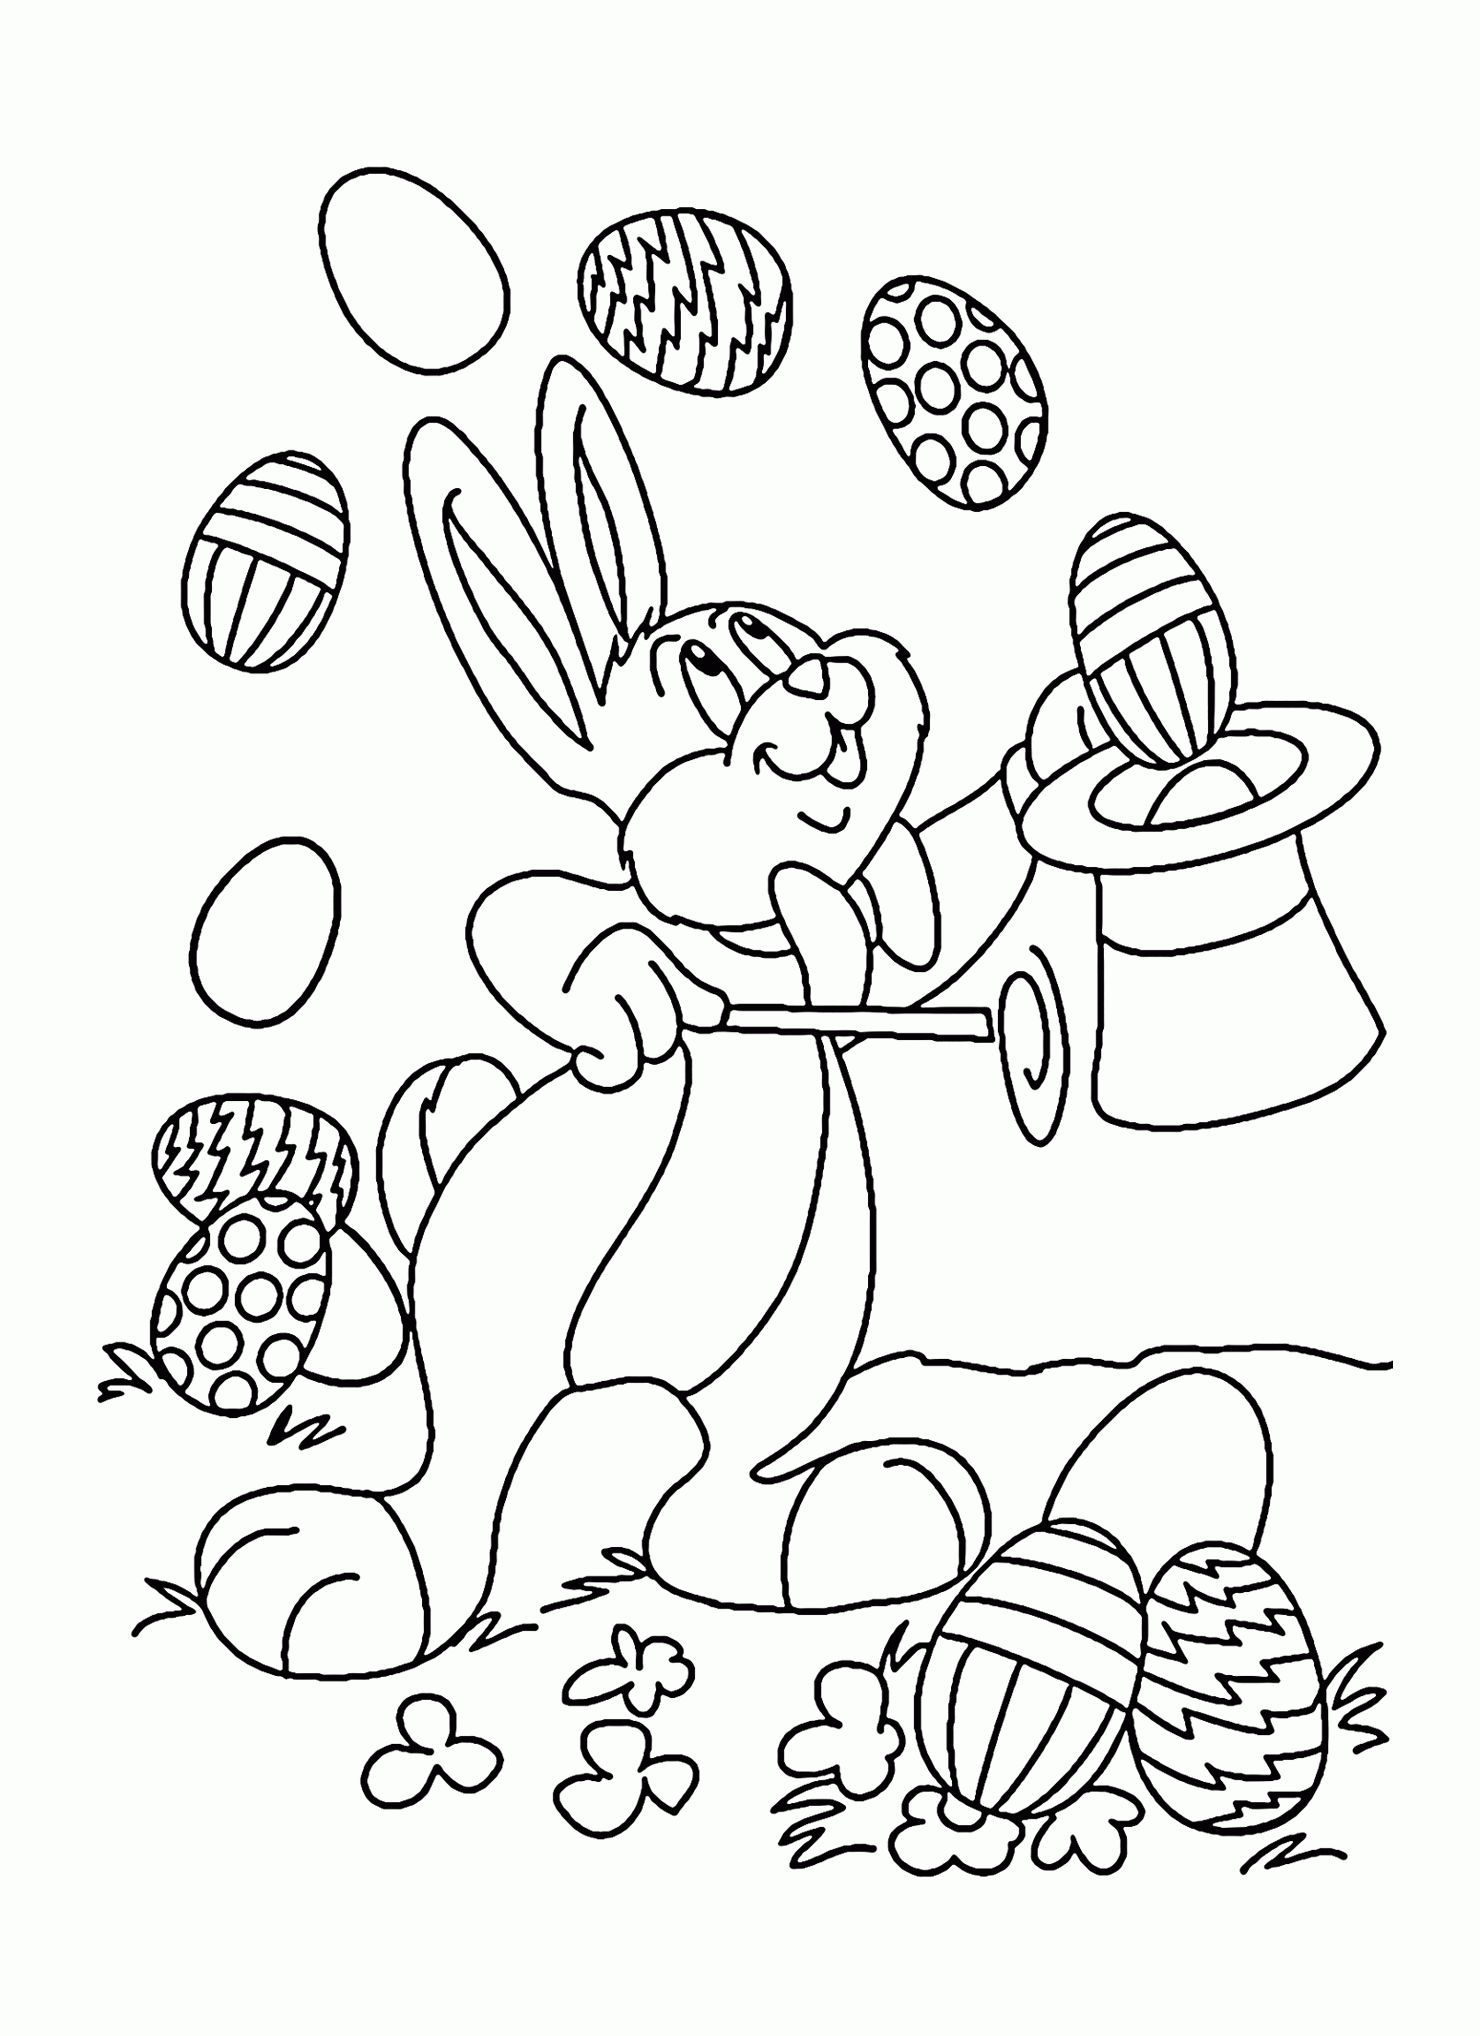 15 Printable Easter Coloring Pages Holiday Vault Bunny Coloring Pages Easter Coloring Pages Printable Free Easter Coloring Pages